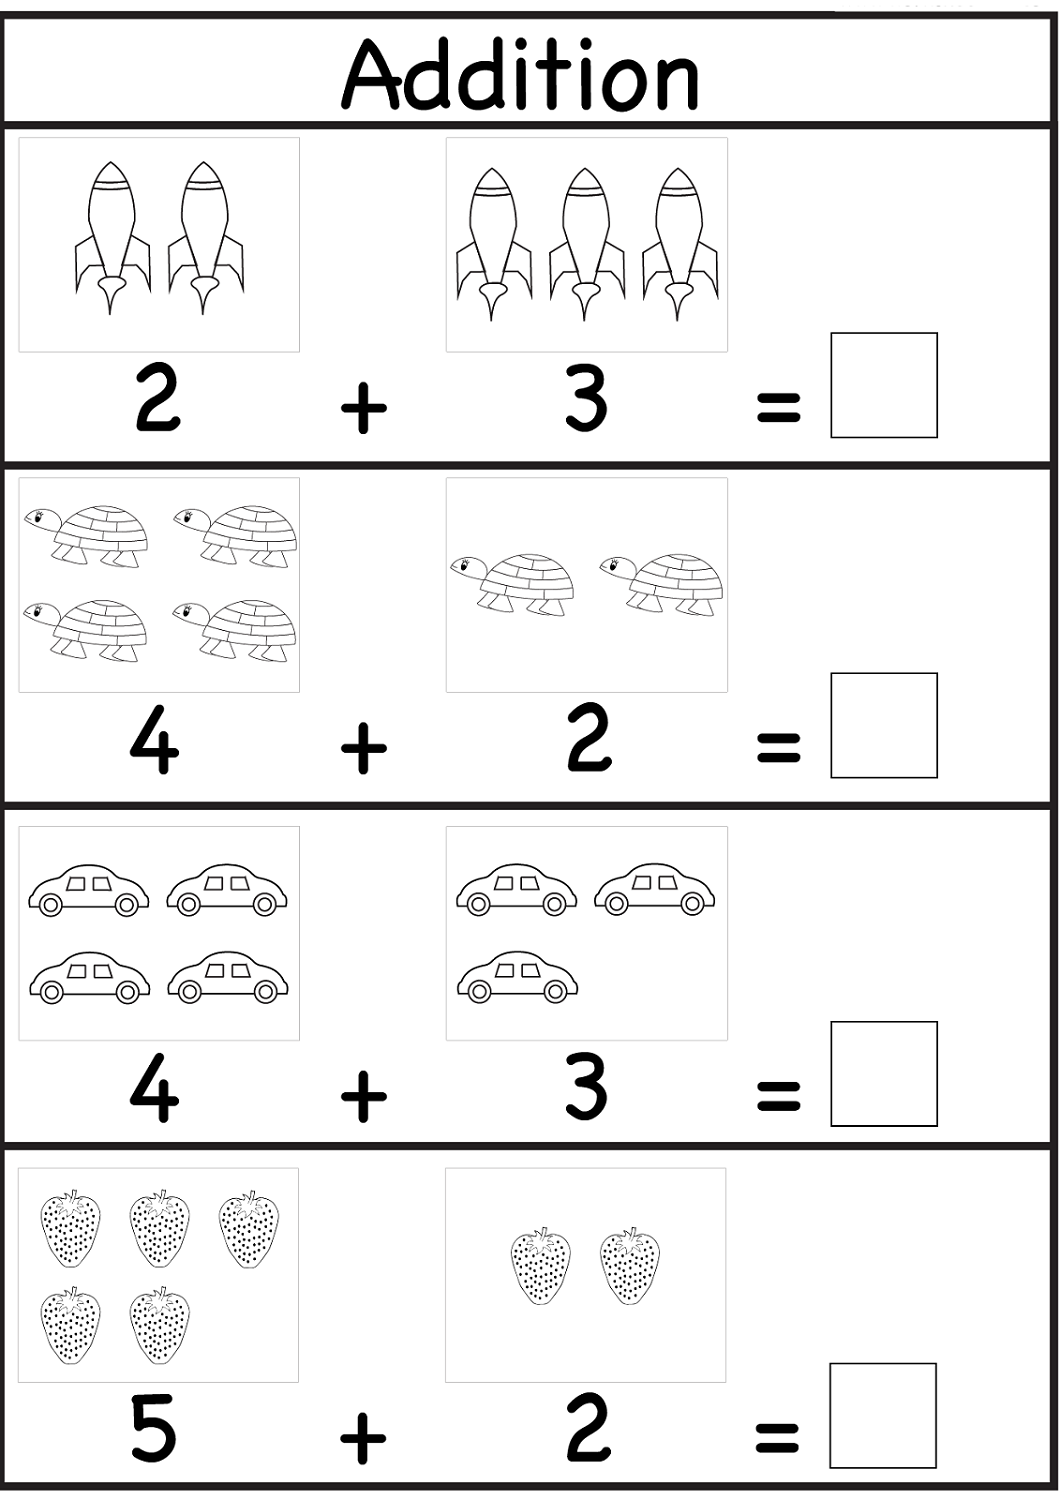 math is fun worksheets for kids – Kids Learning Activity